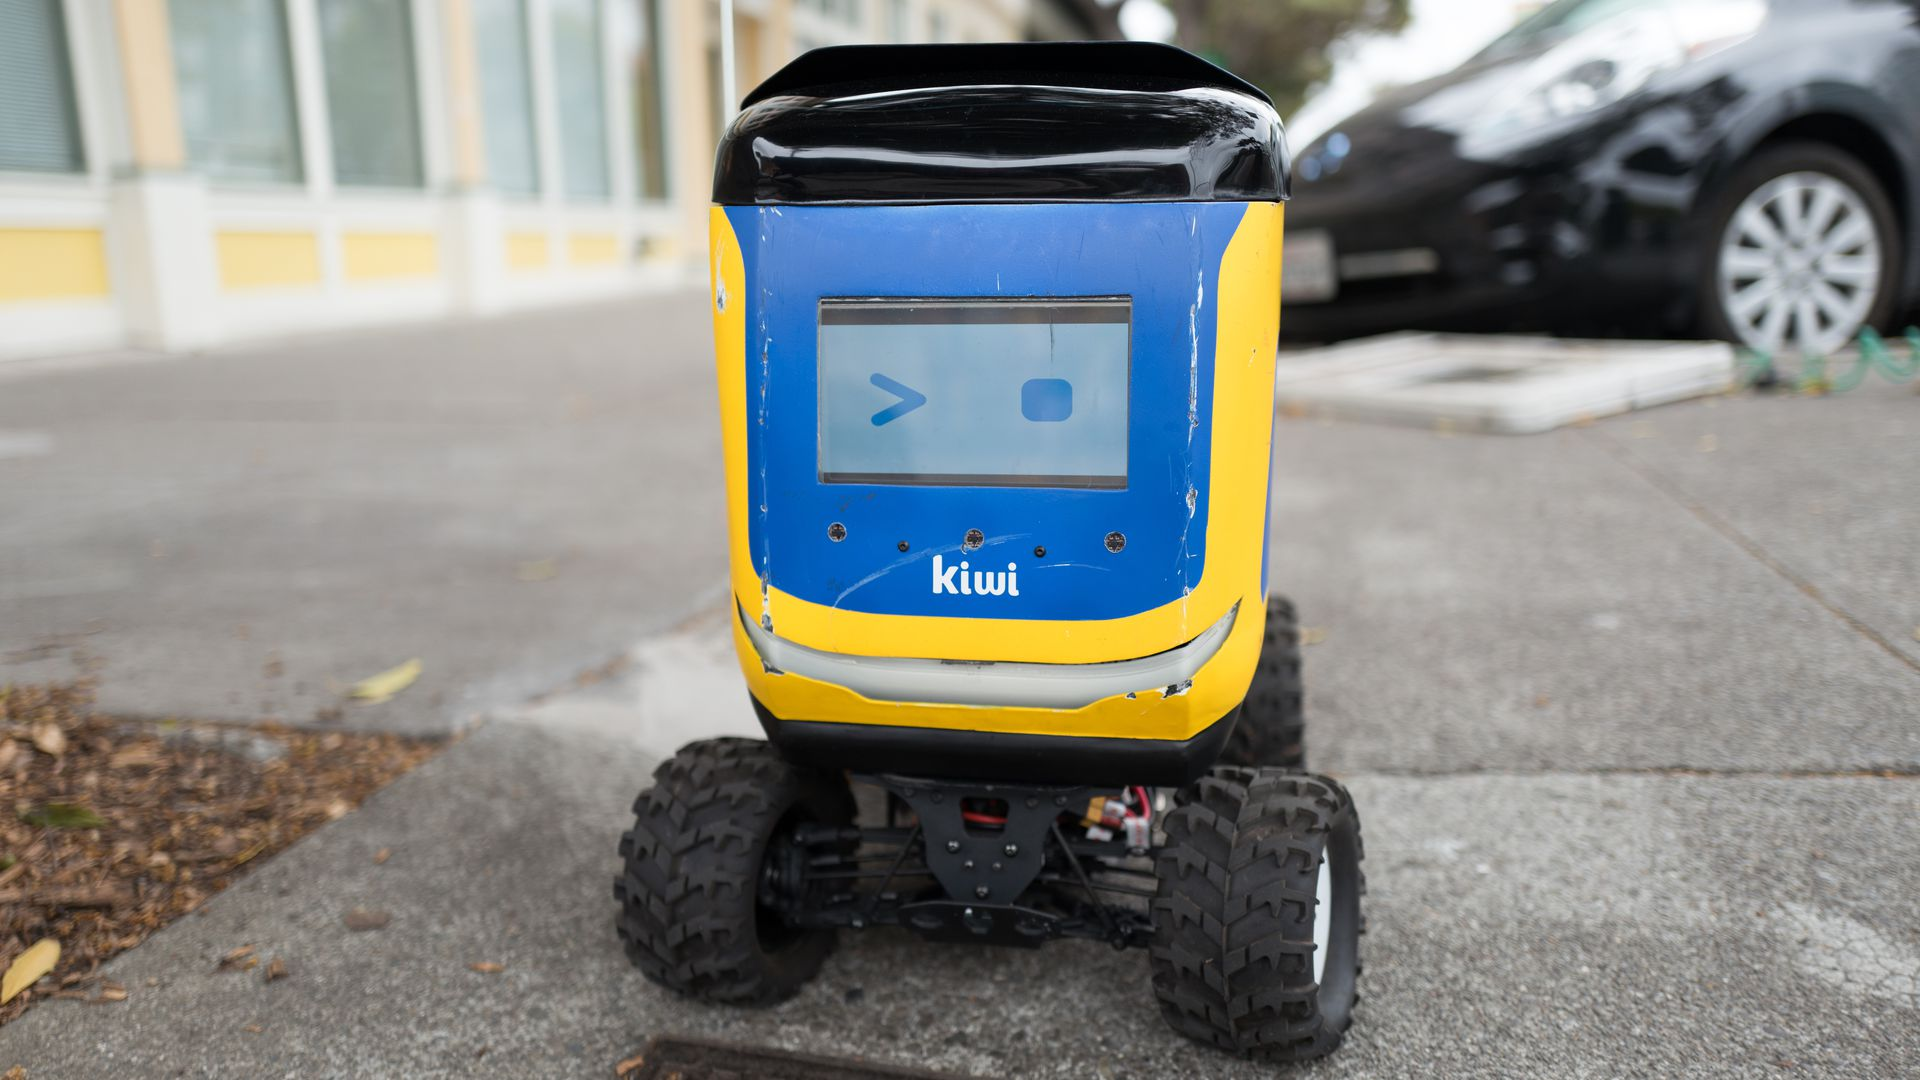 Delivery AVs and bots could pick up data, too